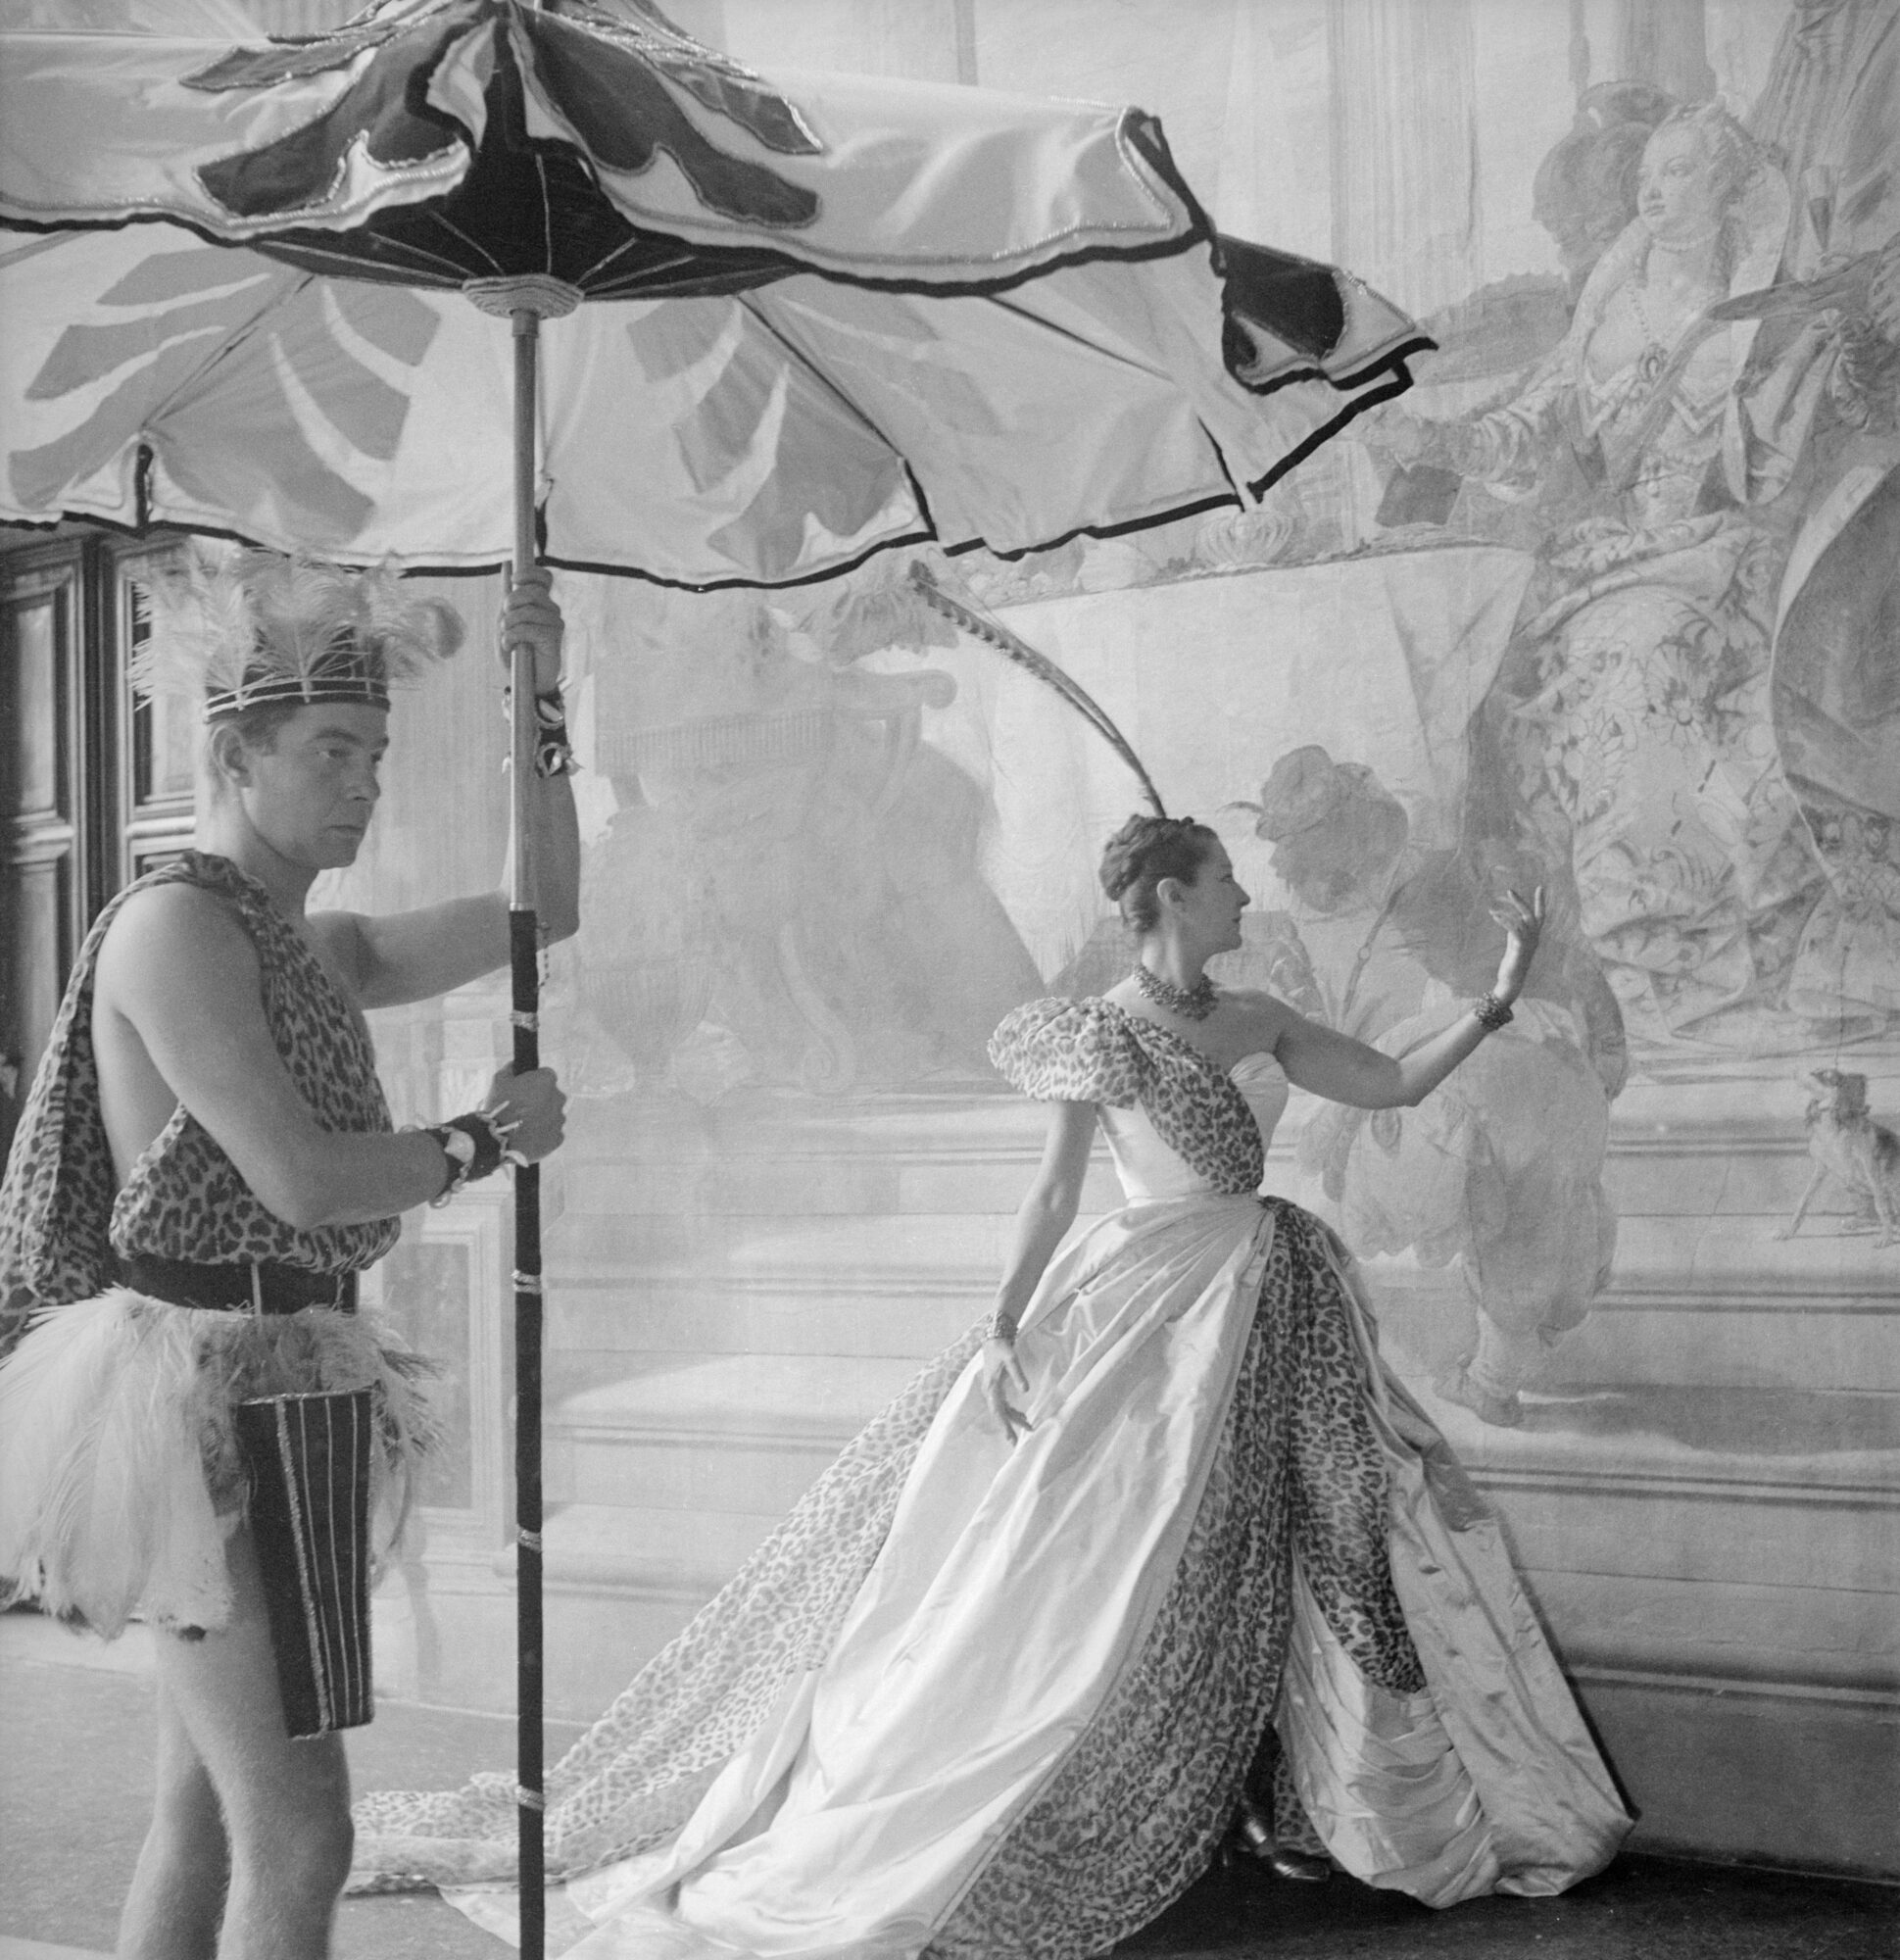 Portrait of Mrs. Reginald Fellowes dressed in a Dior costume gown for the Venetian Beistegui Ball held in the newly restored Palazzo Labia with a costumed attendant (James Caffery) holding a parasol. James Caffery, Daisy Fellowes / Cecil Beaton / Condé Nast / Shutterstock